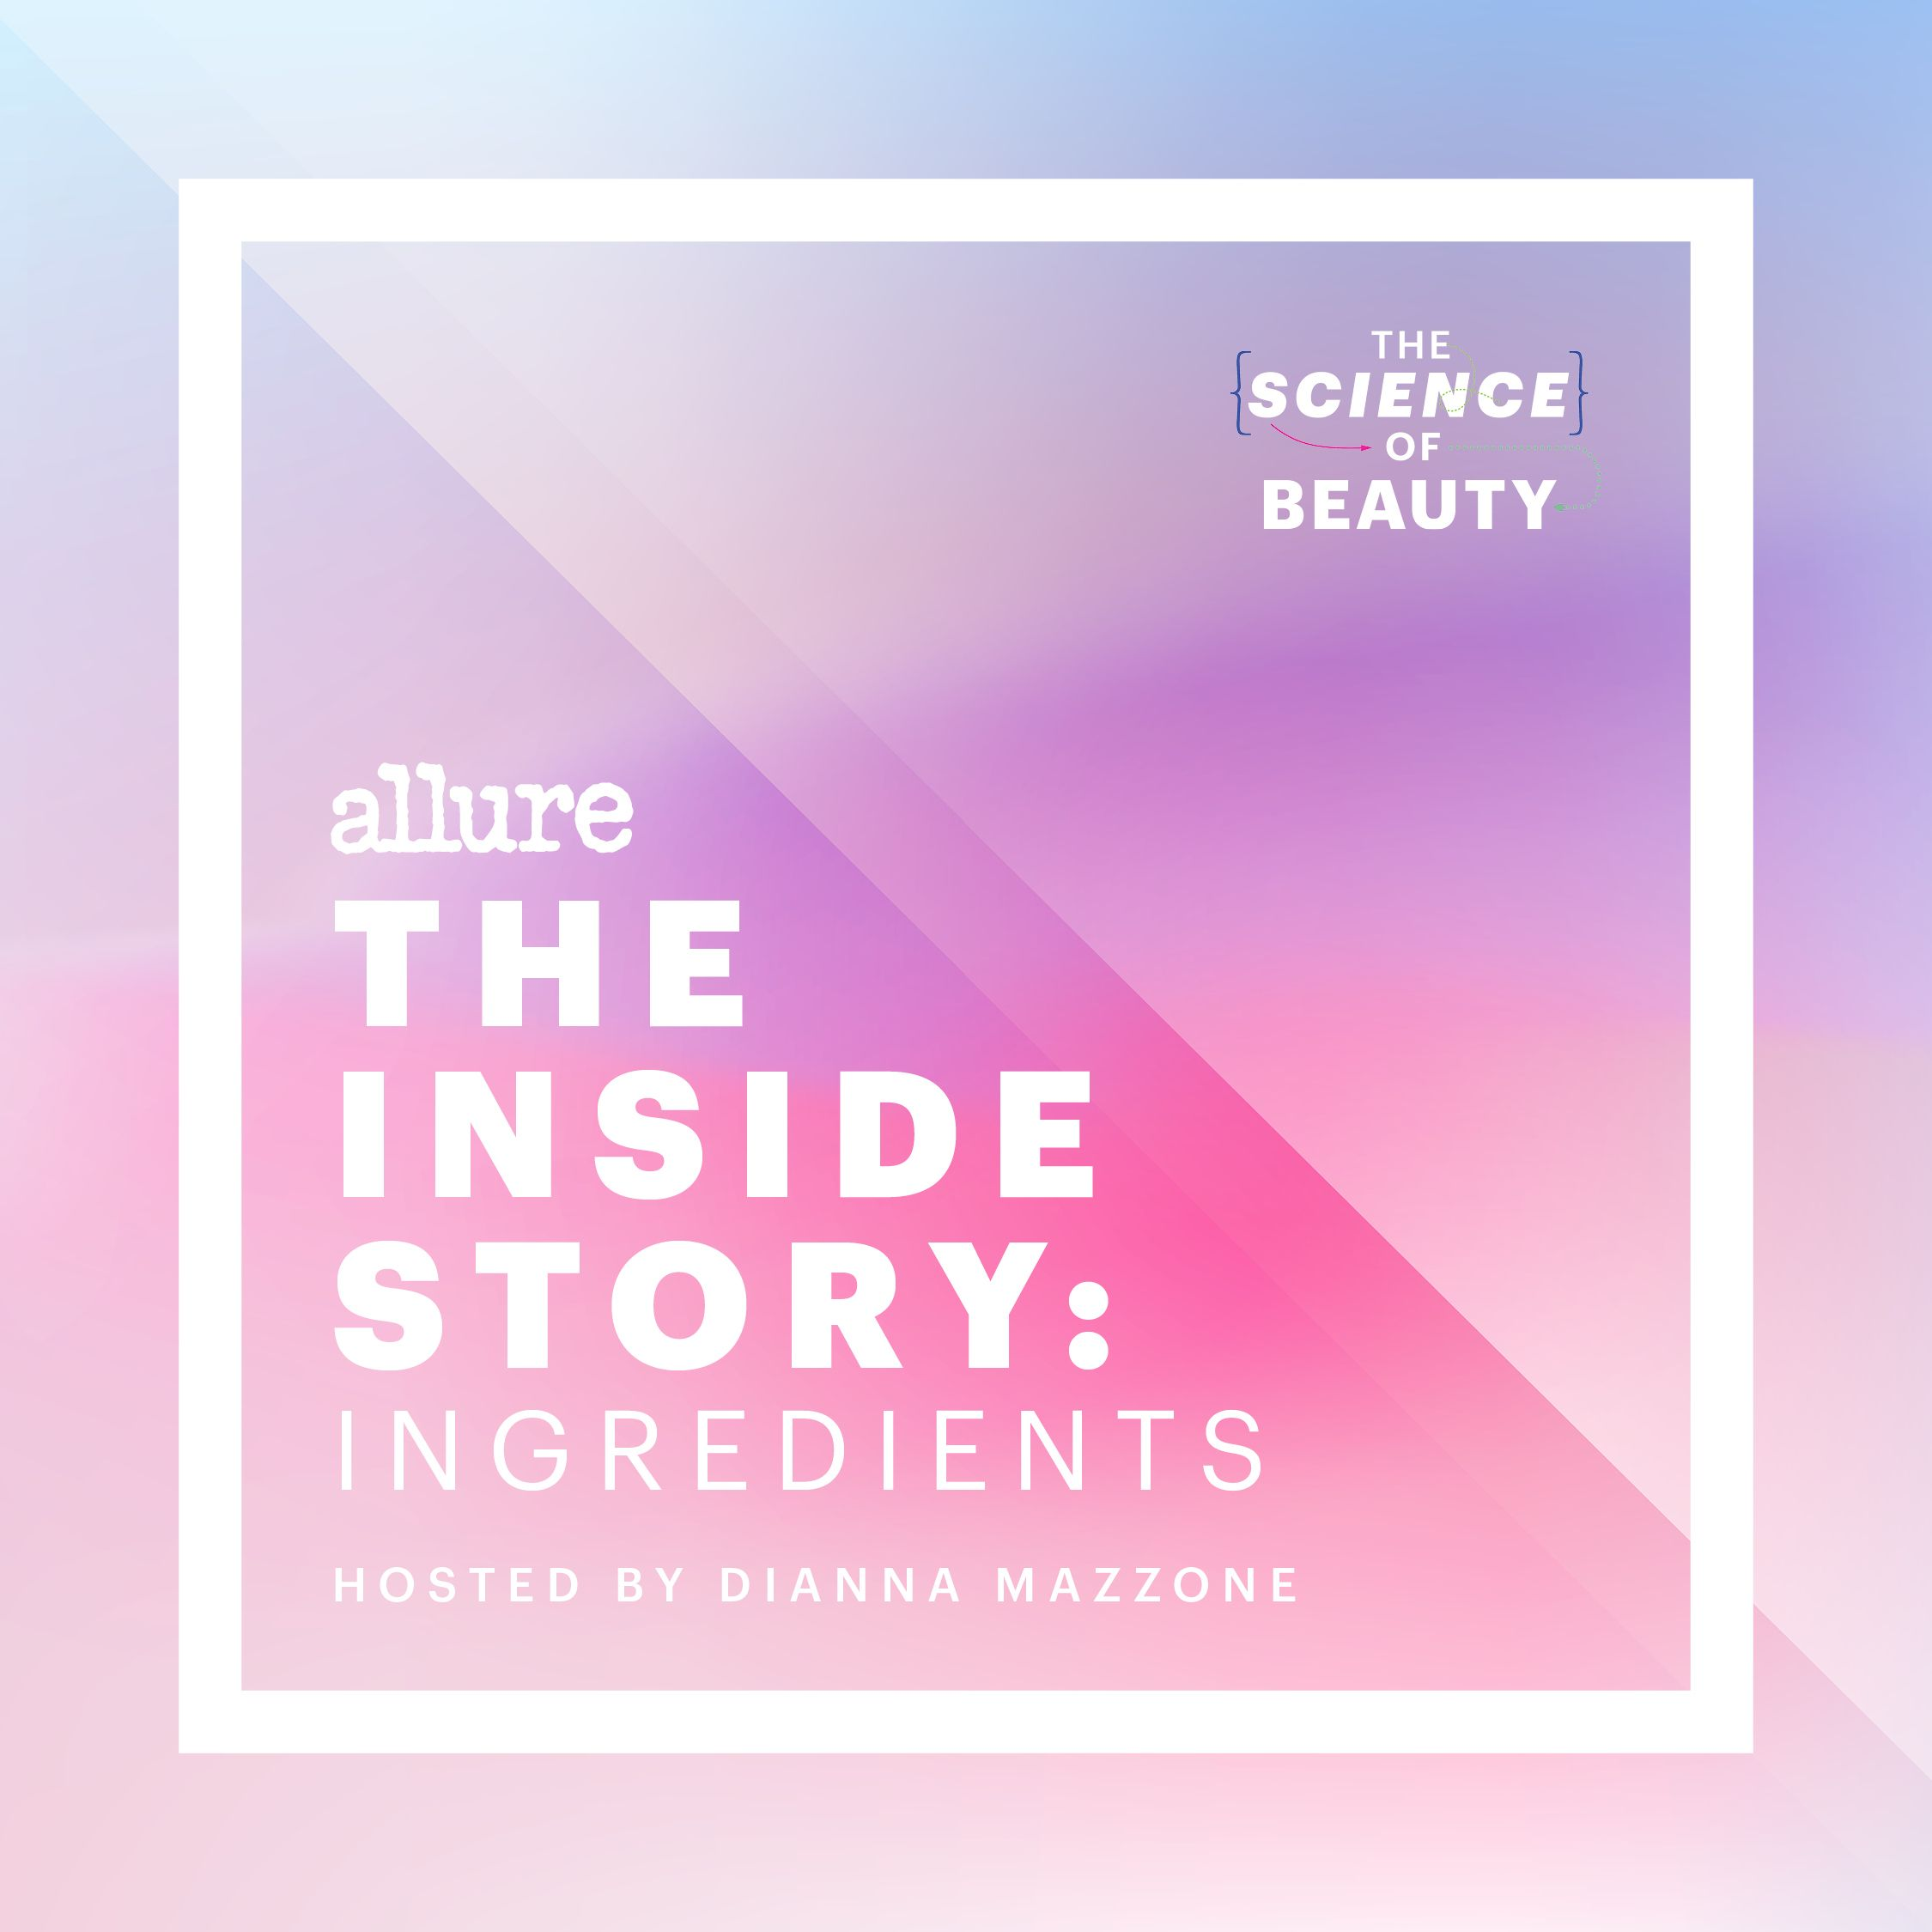 """Allure's The Science of Beauty Presents """"The Inside Story: Ingredients"""